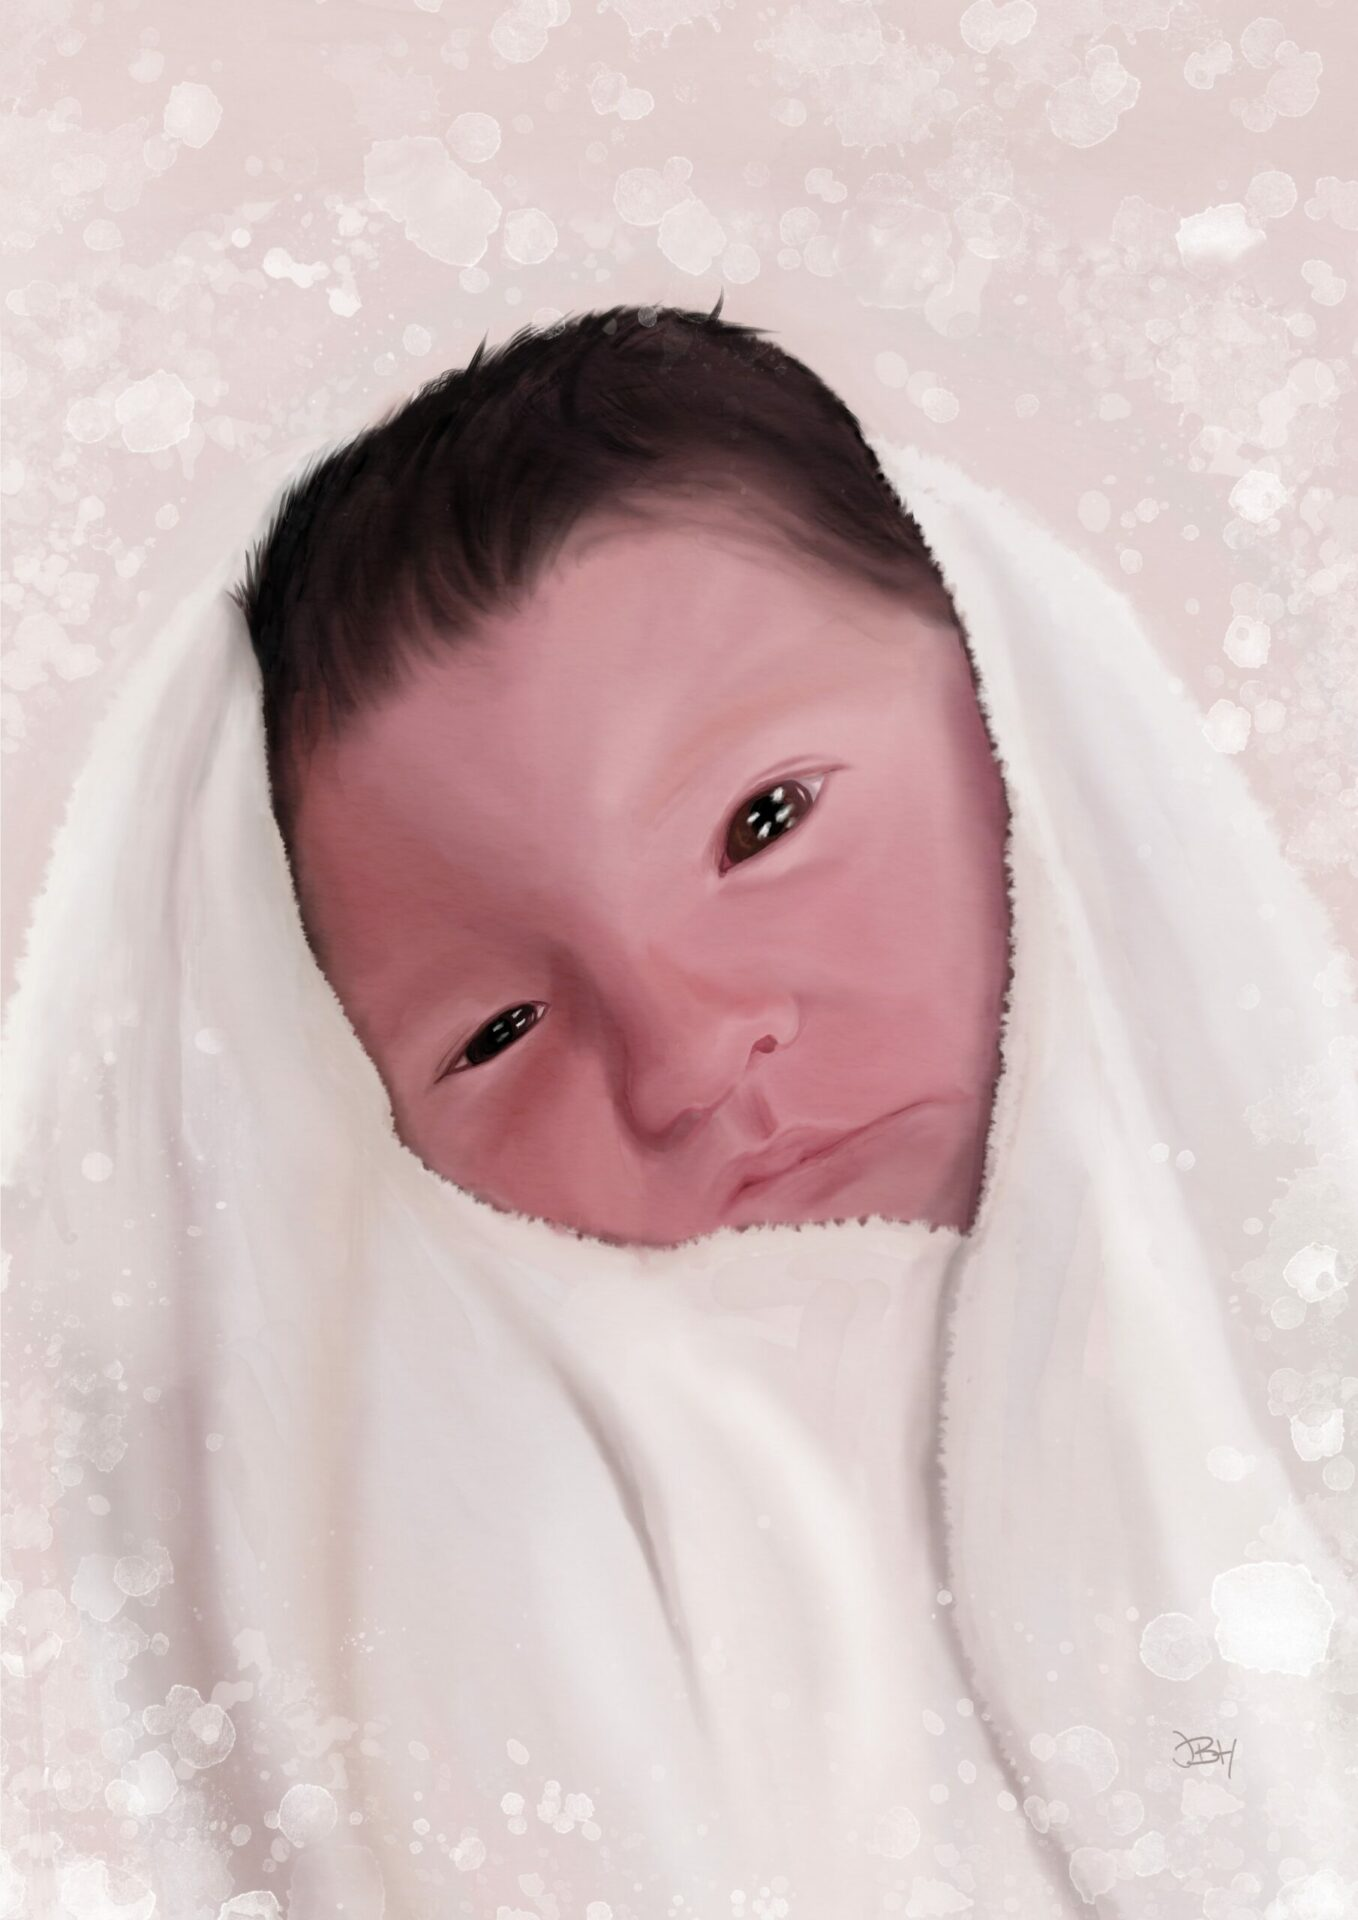 A painting of a new born baby wrapped up in a blanket